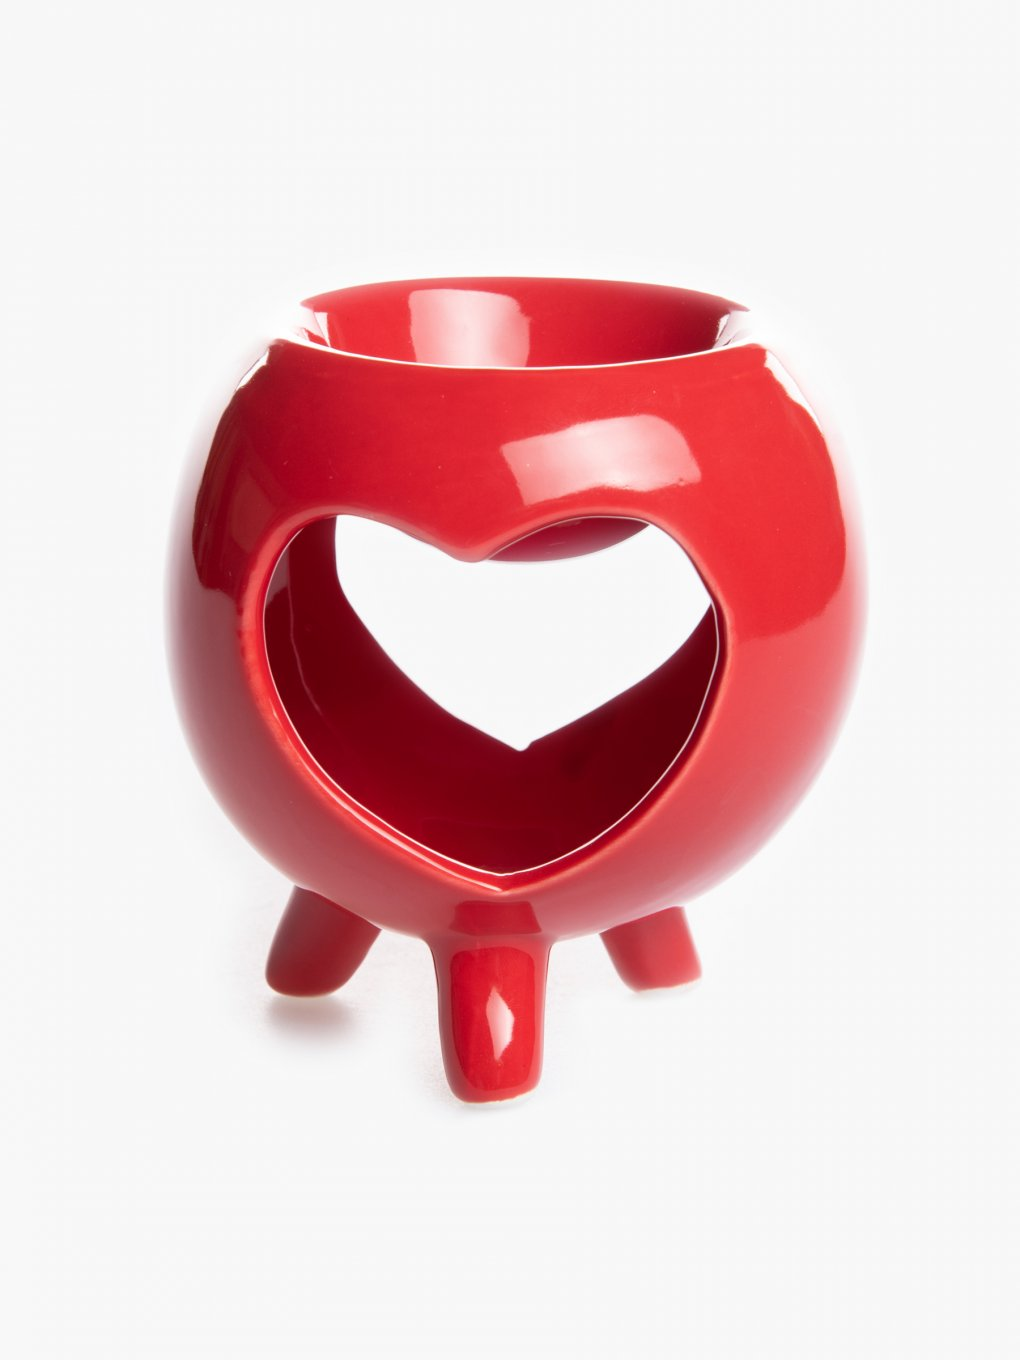 Heart shape wax burner